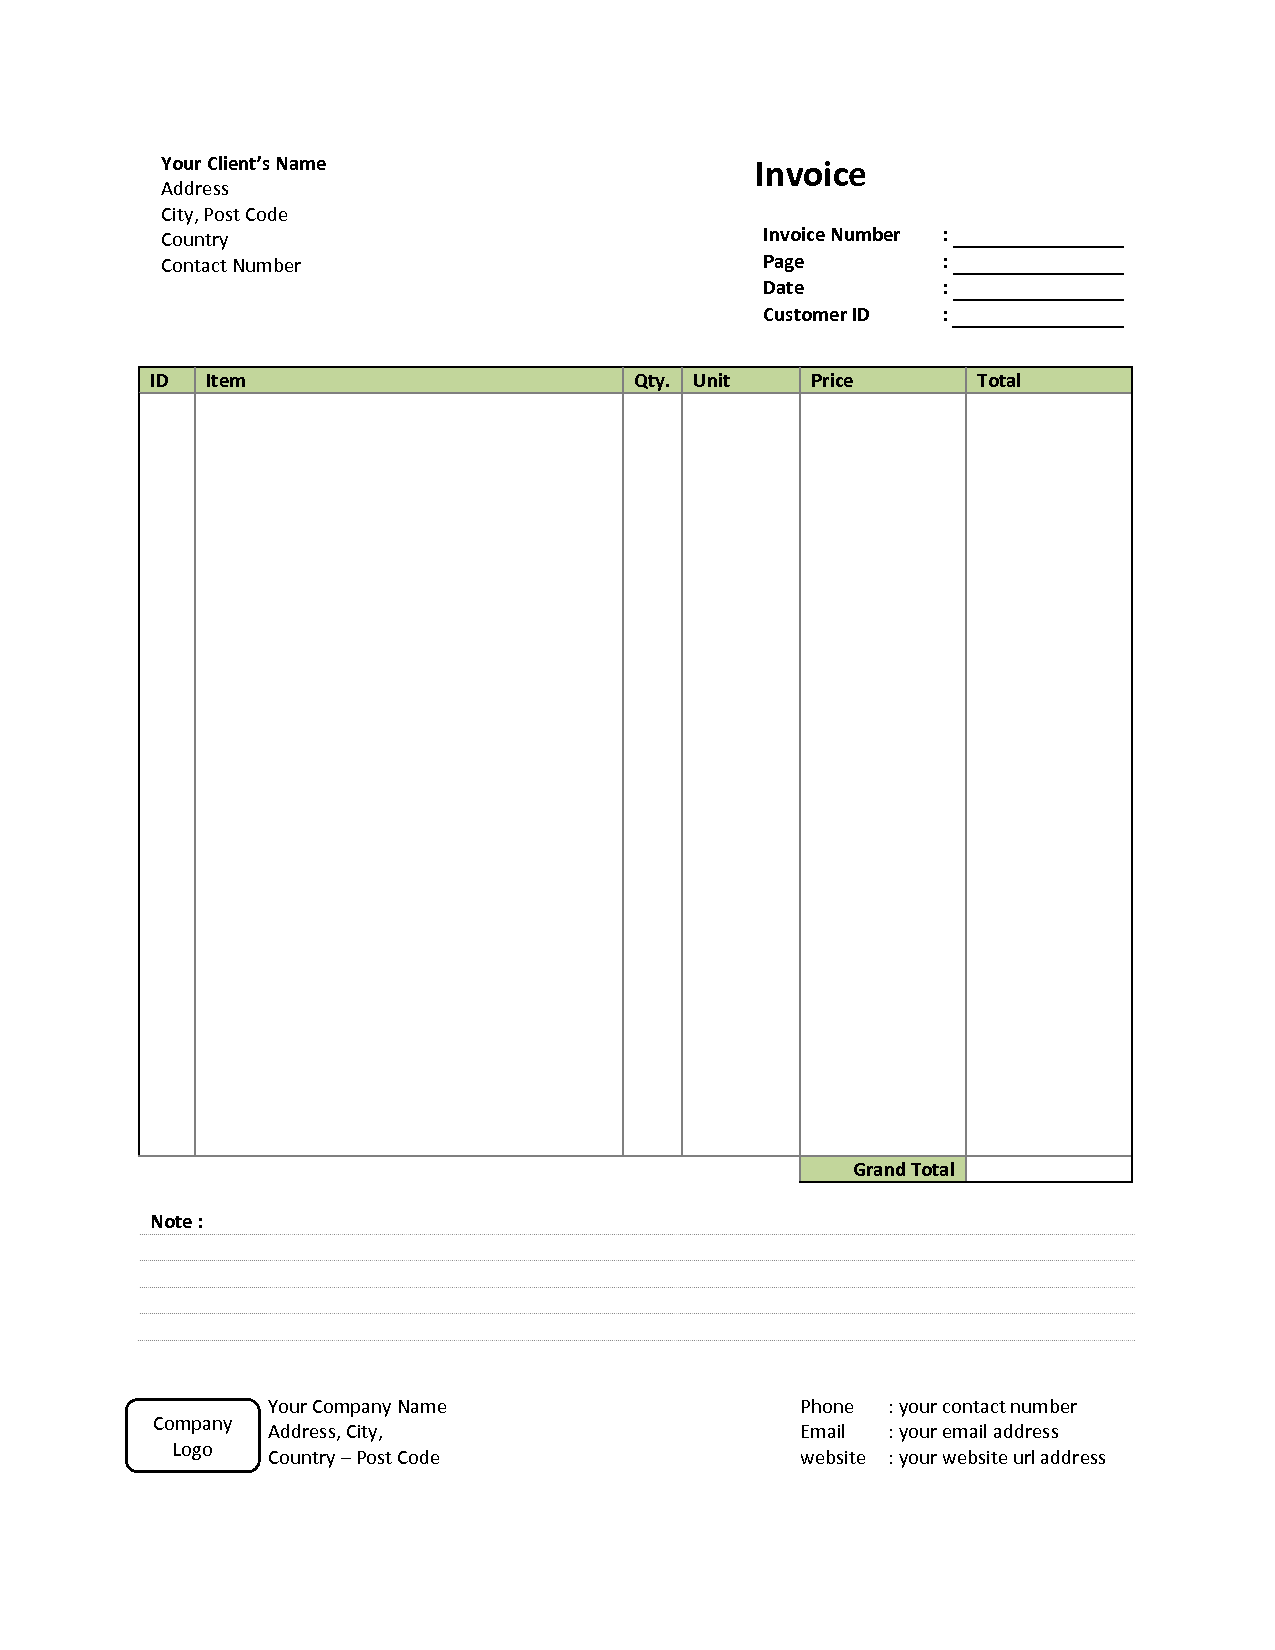 Free Billing Statement Template and Simple Invoice Template Free to Do List